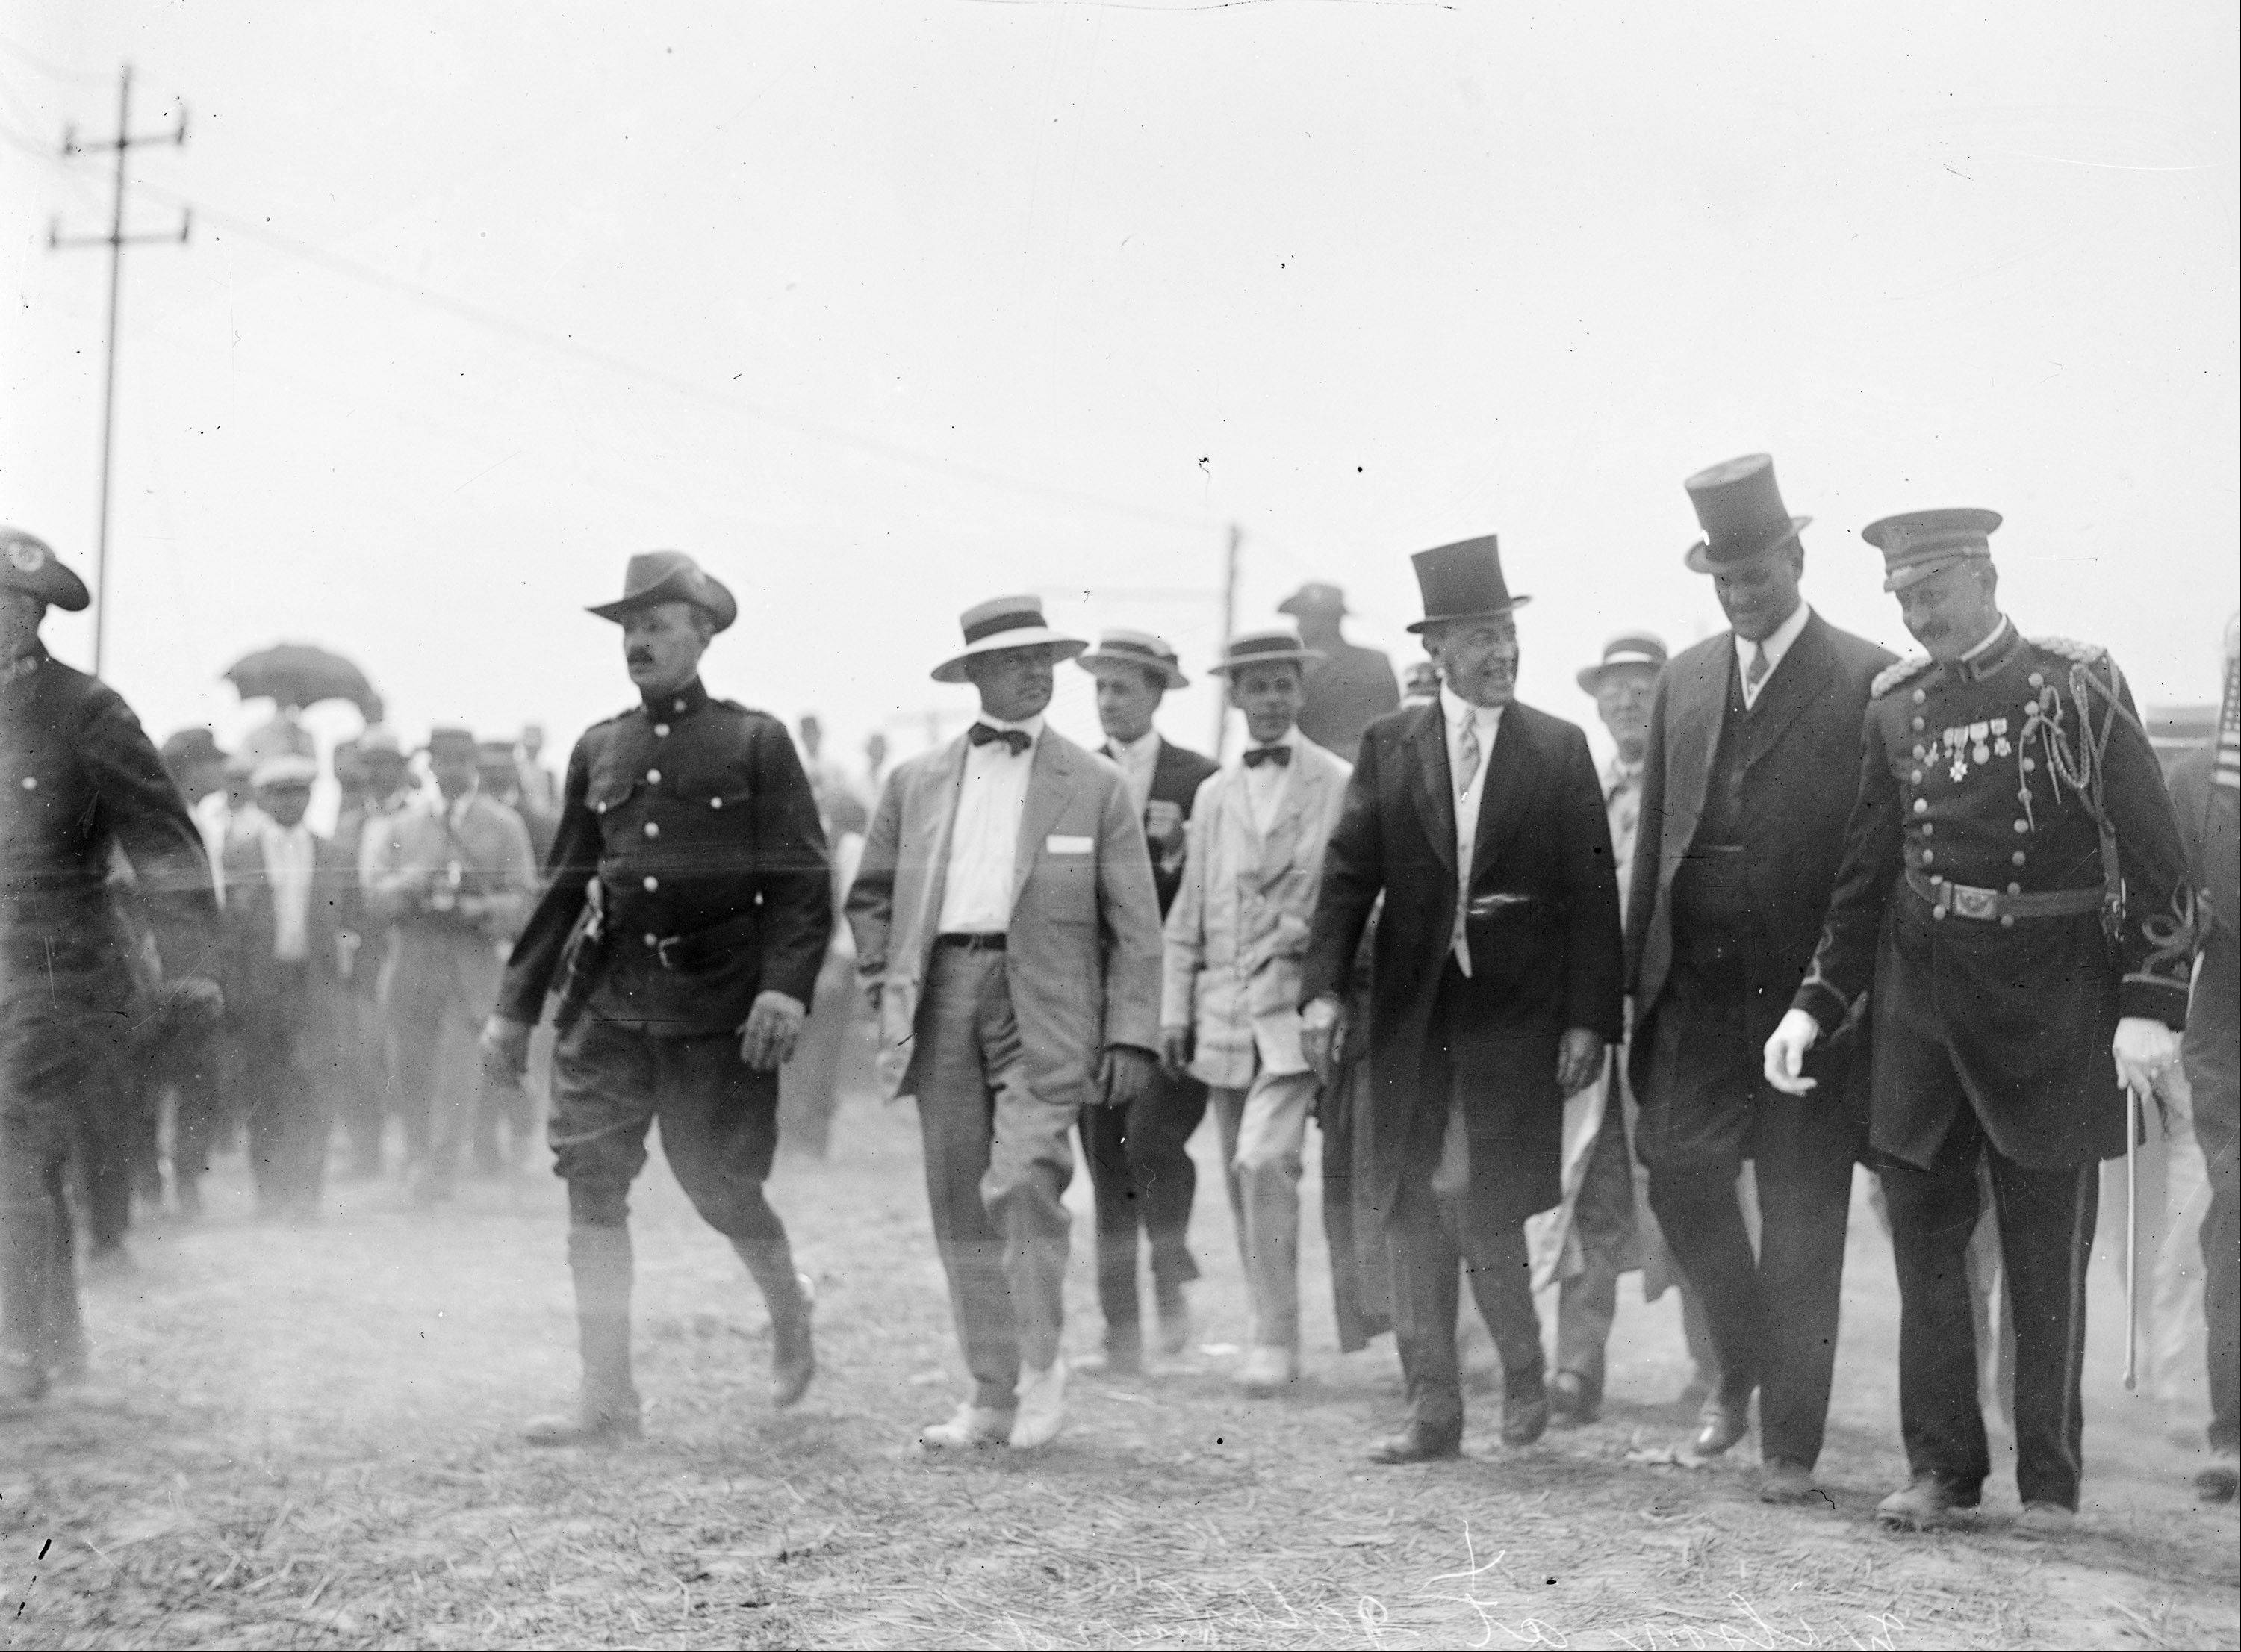 "In this July 1913 photo made available by the Library of Congress, President Woodrow Wilson, third from right, attends a commemoration for the 50th anniversary of the Battle of Gettysburg. After Abraham Lincoln, the first major presidential address at Gettysburg was given at this event by Wilson, who privately ranked Lincoln's speech as ""very, very high,"" and offered a vague tribute to national unity that disappointed admirers of a man whose speechmaking had enabled his quick rise from Princeton president to the White House. According to a new biography by A. Scott Berg, Wilson was a reluctant guest of honor. He initially turned down an invitation and gave in only after being warned that the Virginia-born president would be perceived as hostile to a gathering attended by veterans from both sides."